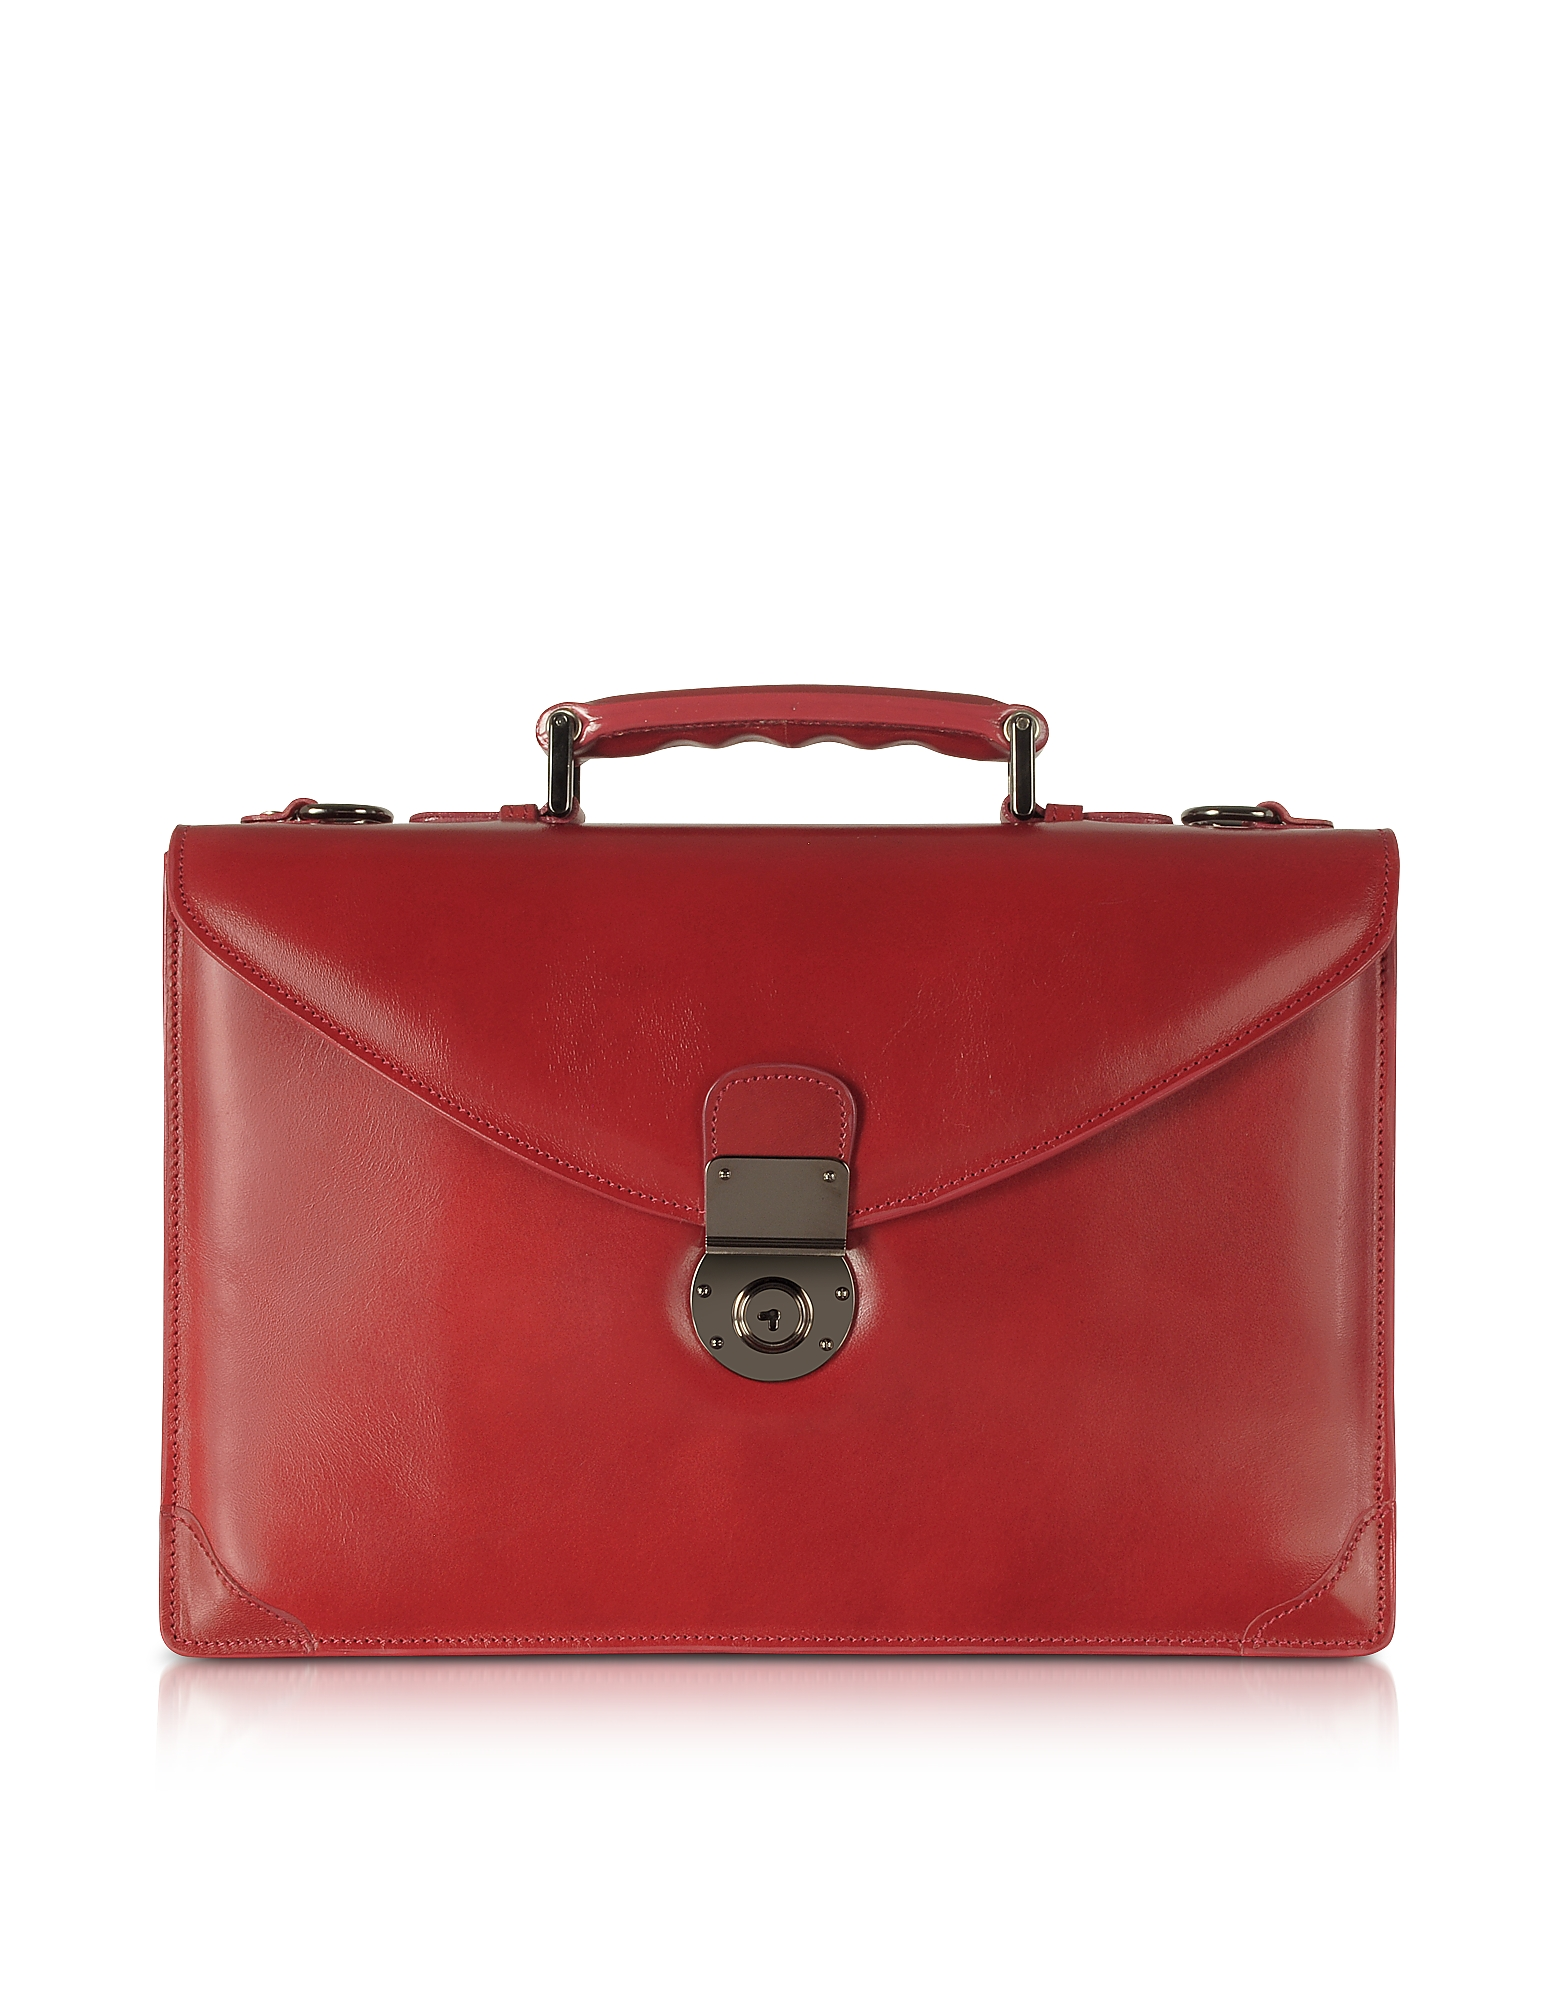 L.A.P.A. Briefcases, Ruby Red Double Gusset Leather Briefcase